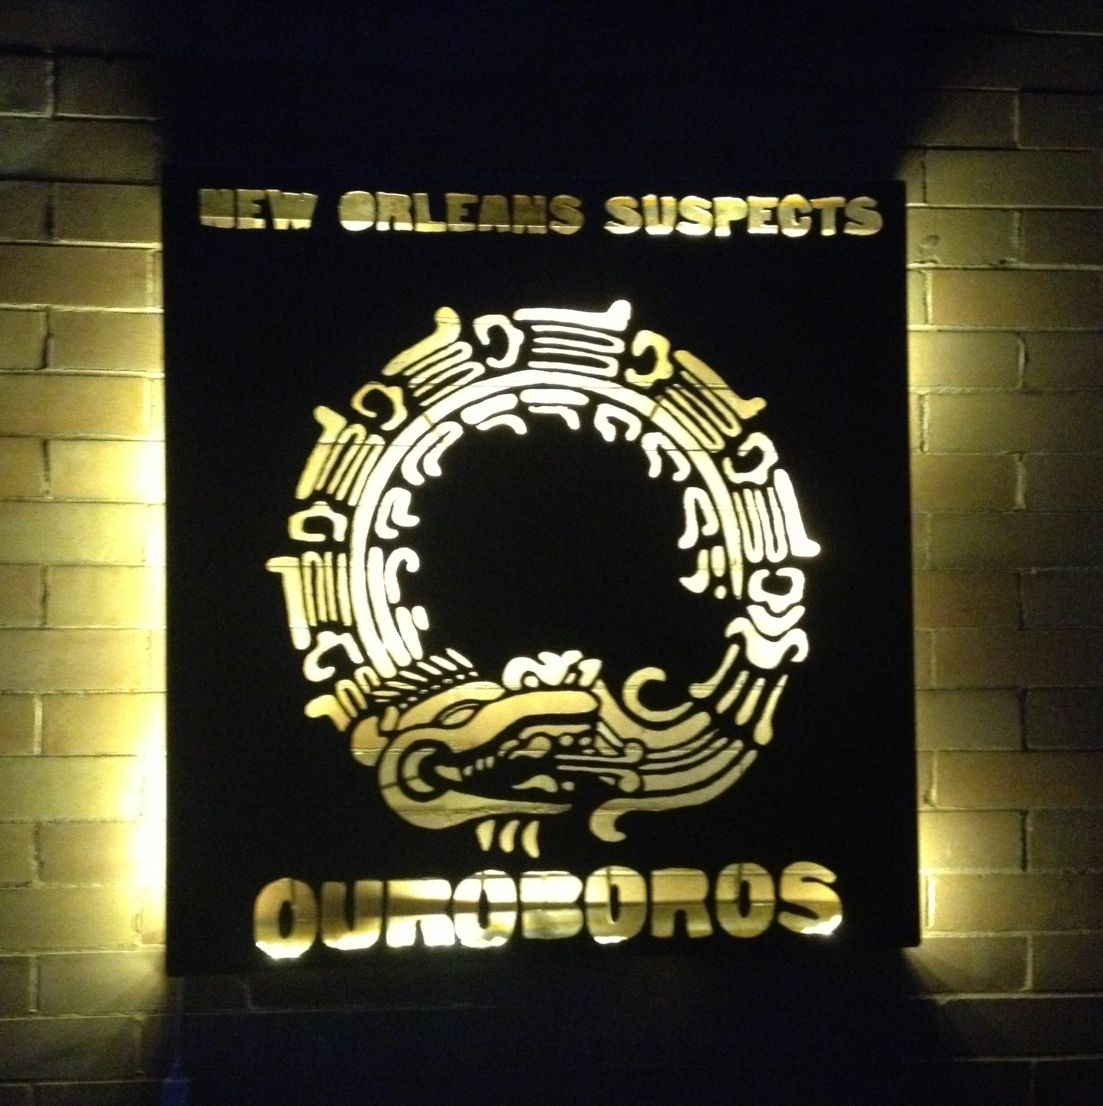 New Orleans Suspects Ouorboros